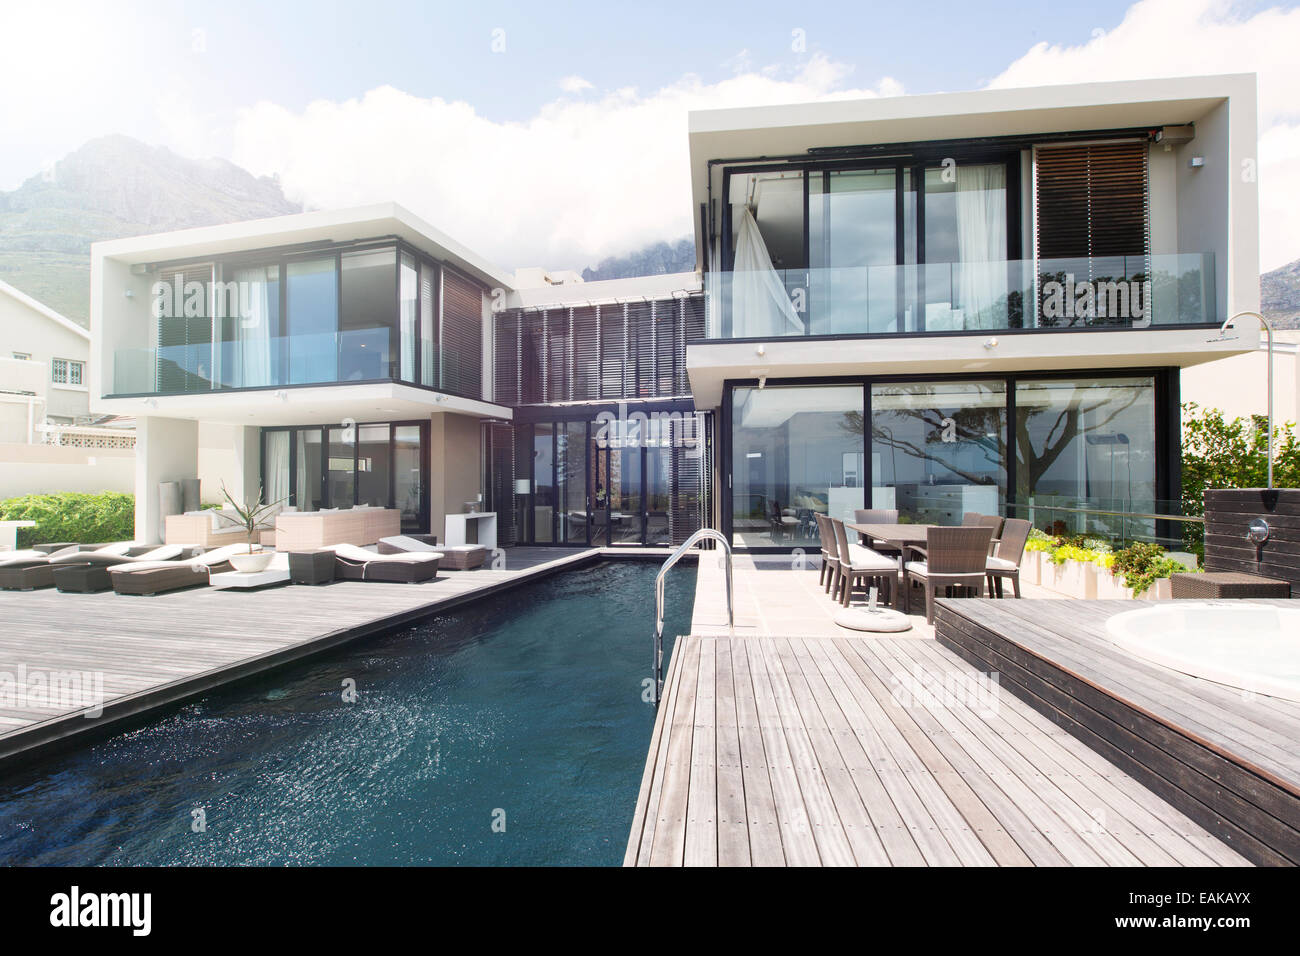 Villa with pool stockfotos villa with pool bilder alamy for Modernes haus terrasse